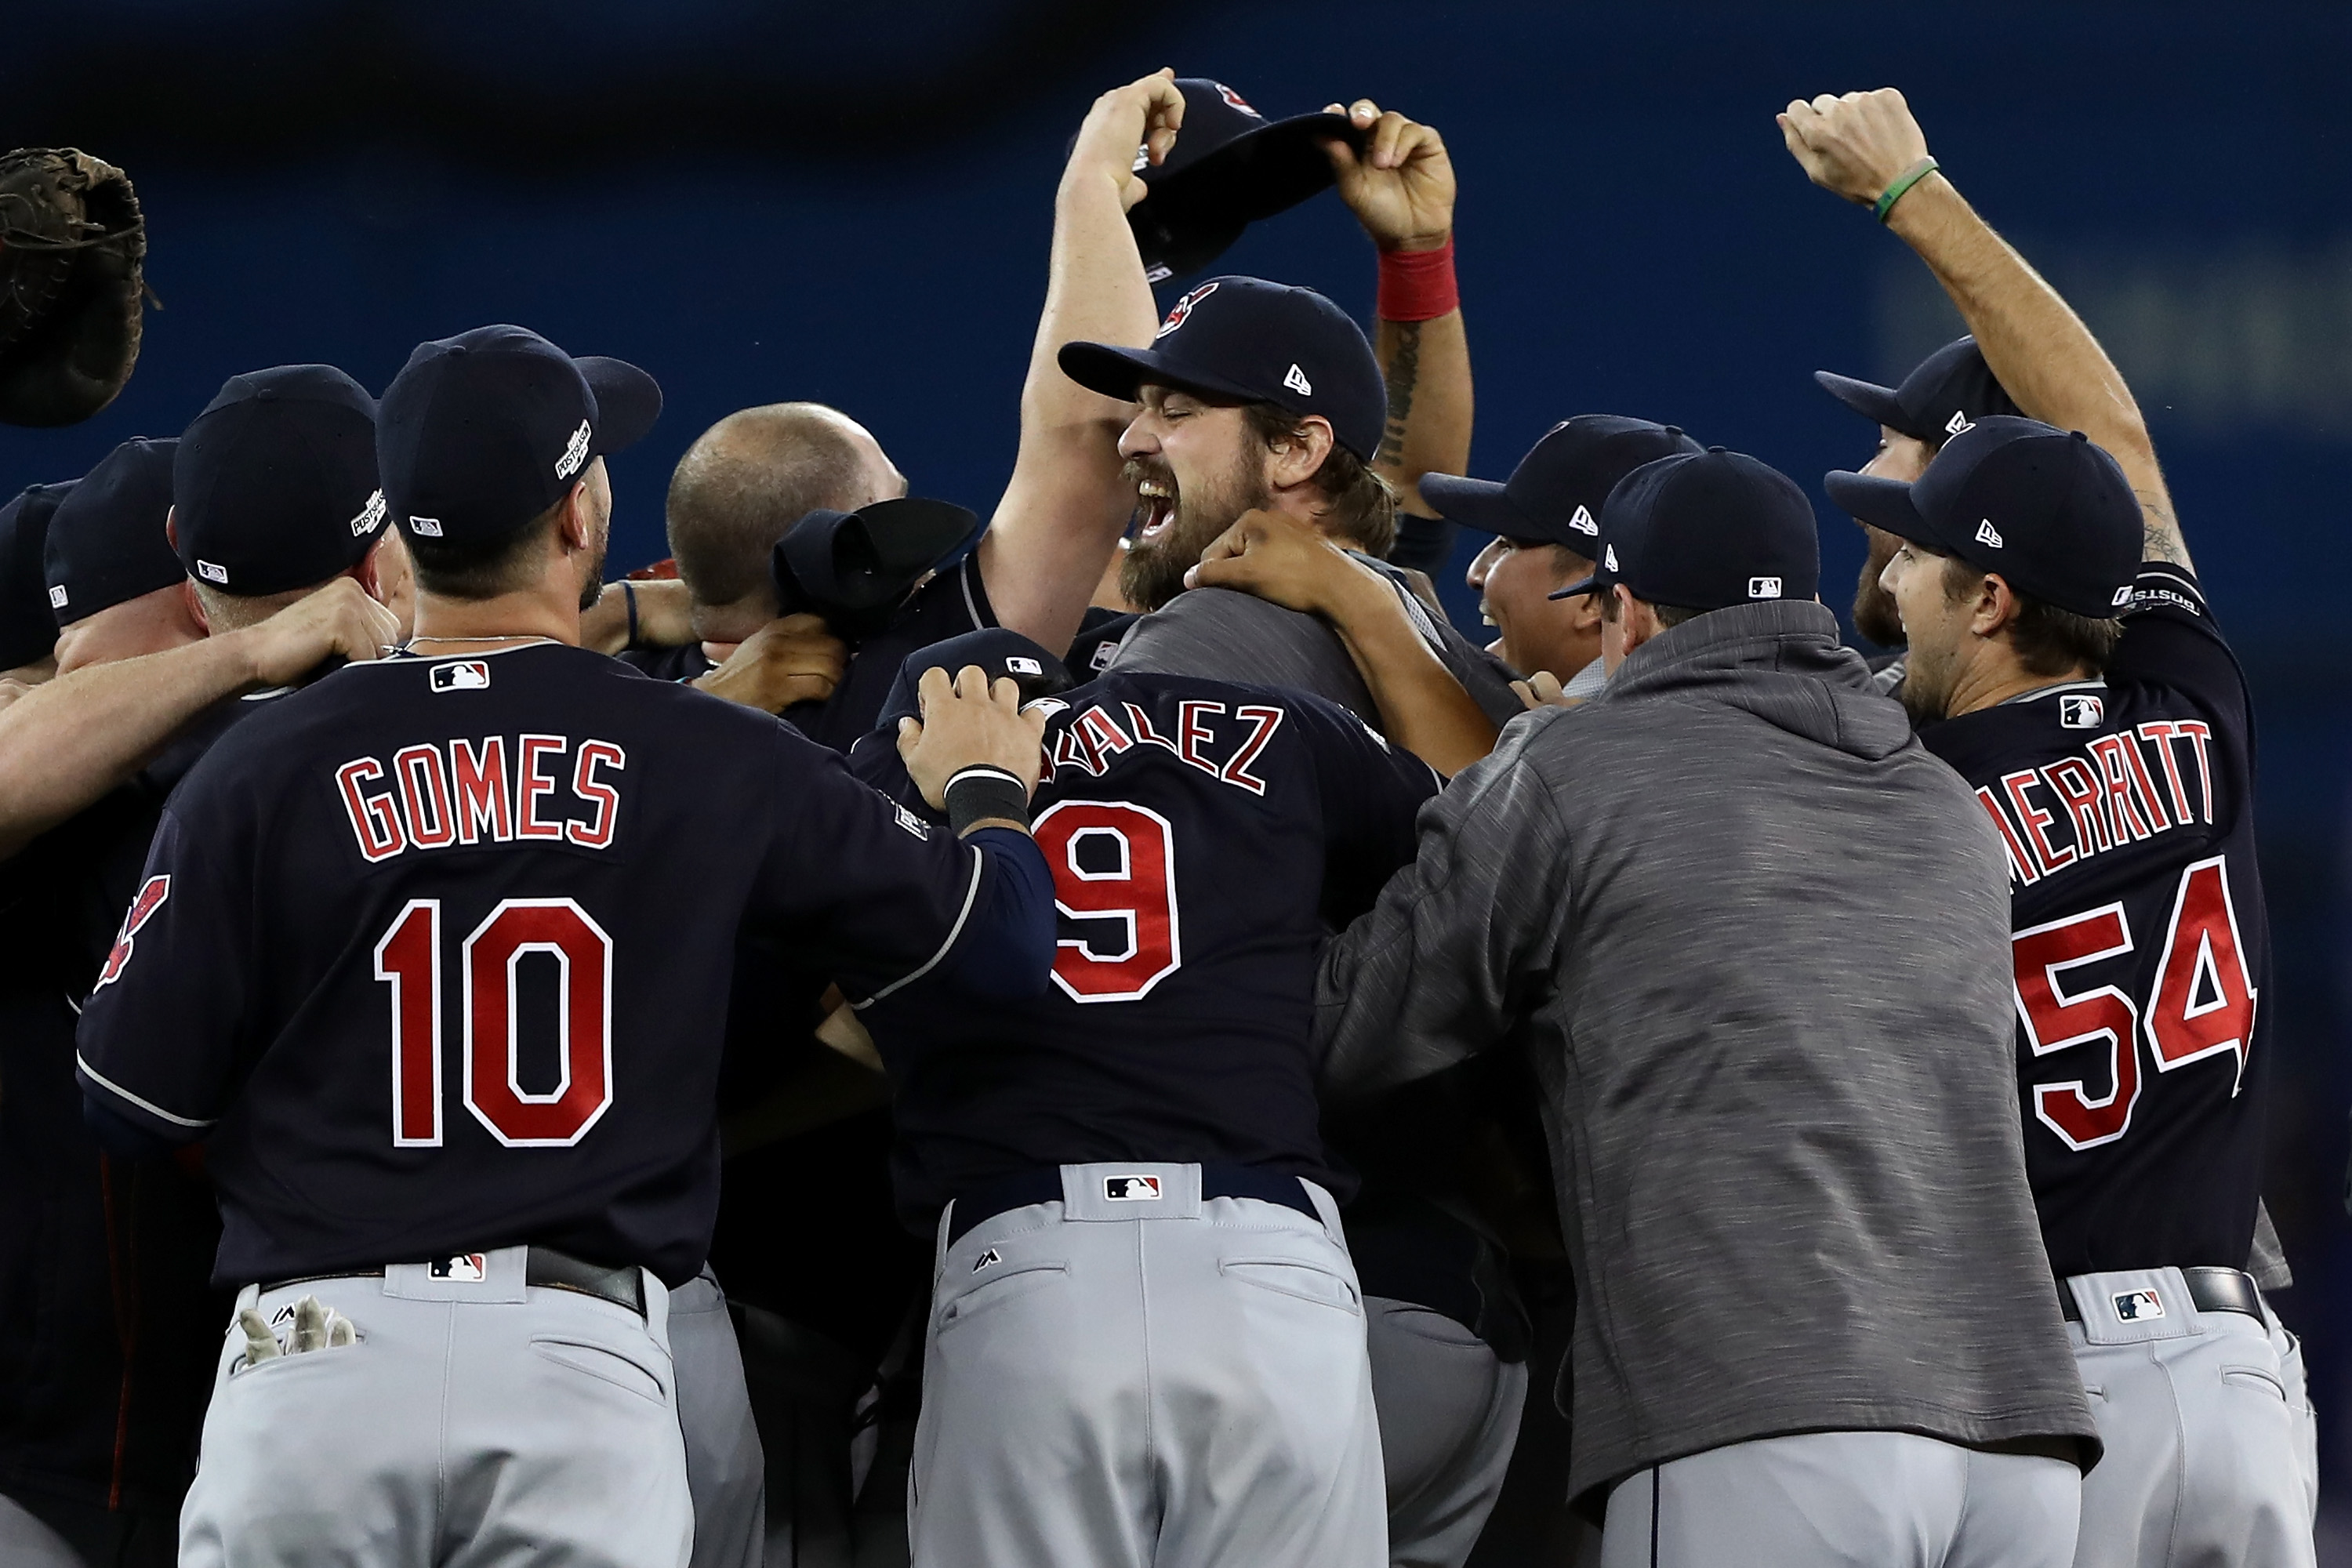 The Cleveland Indians celebrate after defeating the Toronto Blue Jays Wednesday to win the American League Championship. (Getty Images)